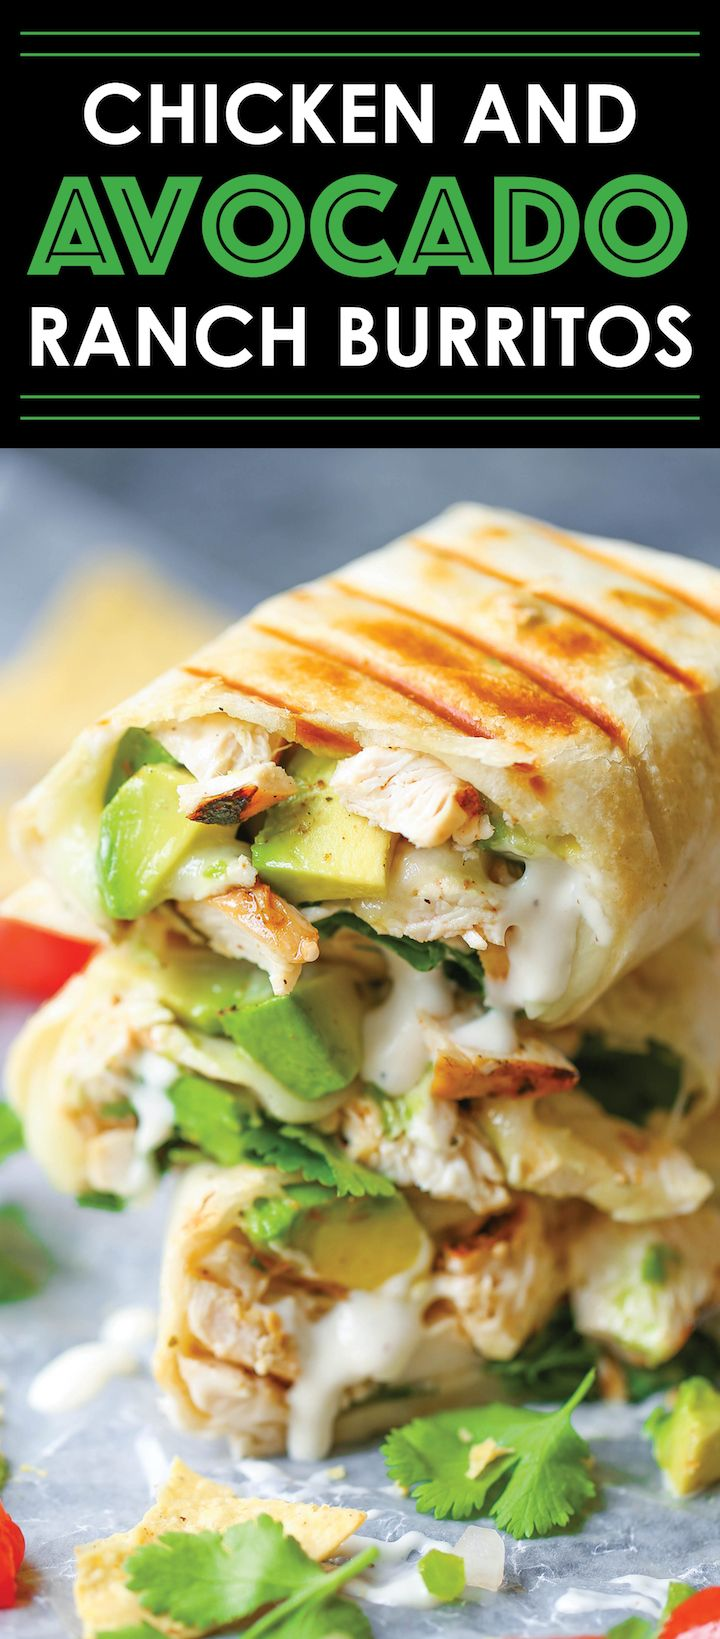 Chicken and Avocado Ranch Burritos – These come together with just 15 min prep! Yo